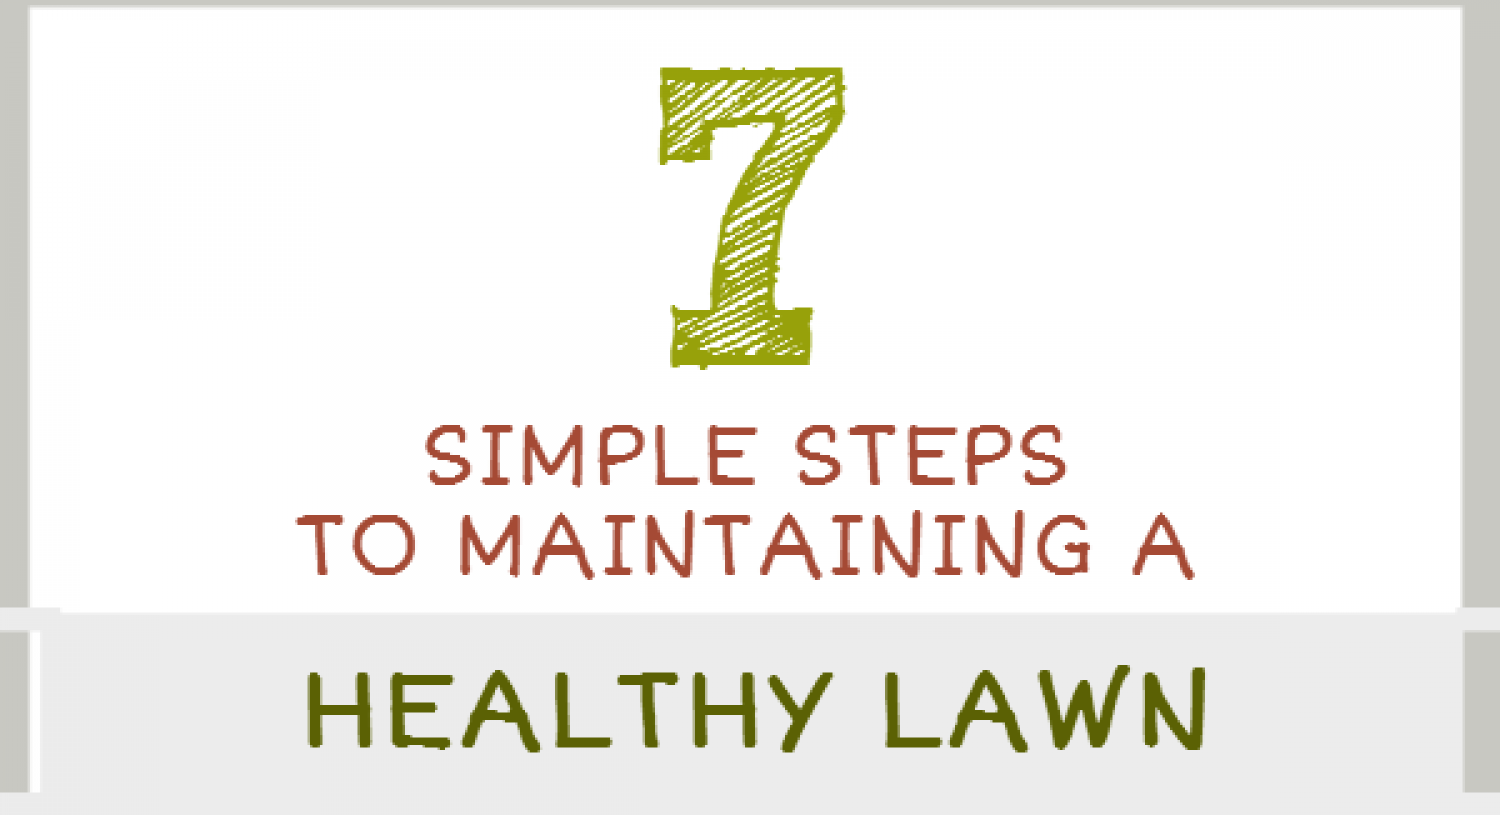 7 Simple Steps To Maintaining A Healthy Lawn Infographic